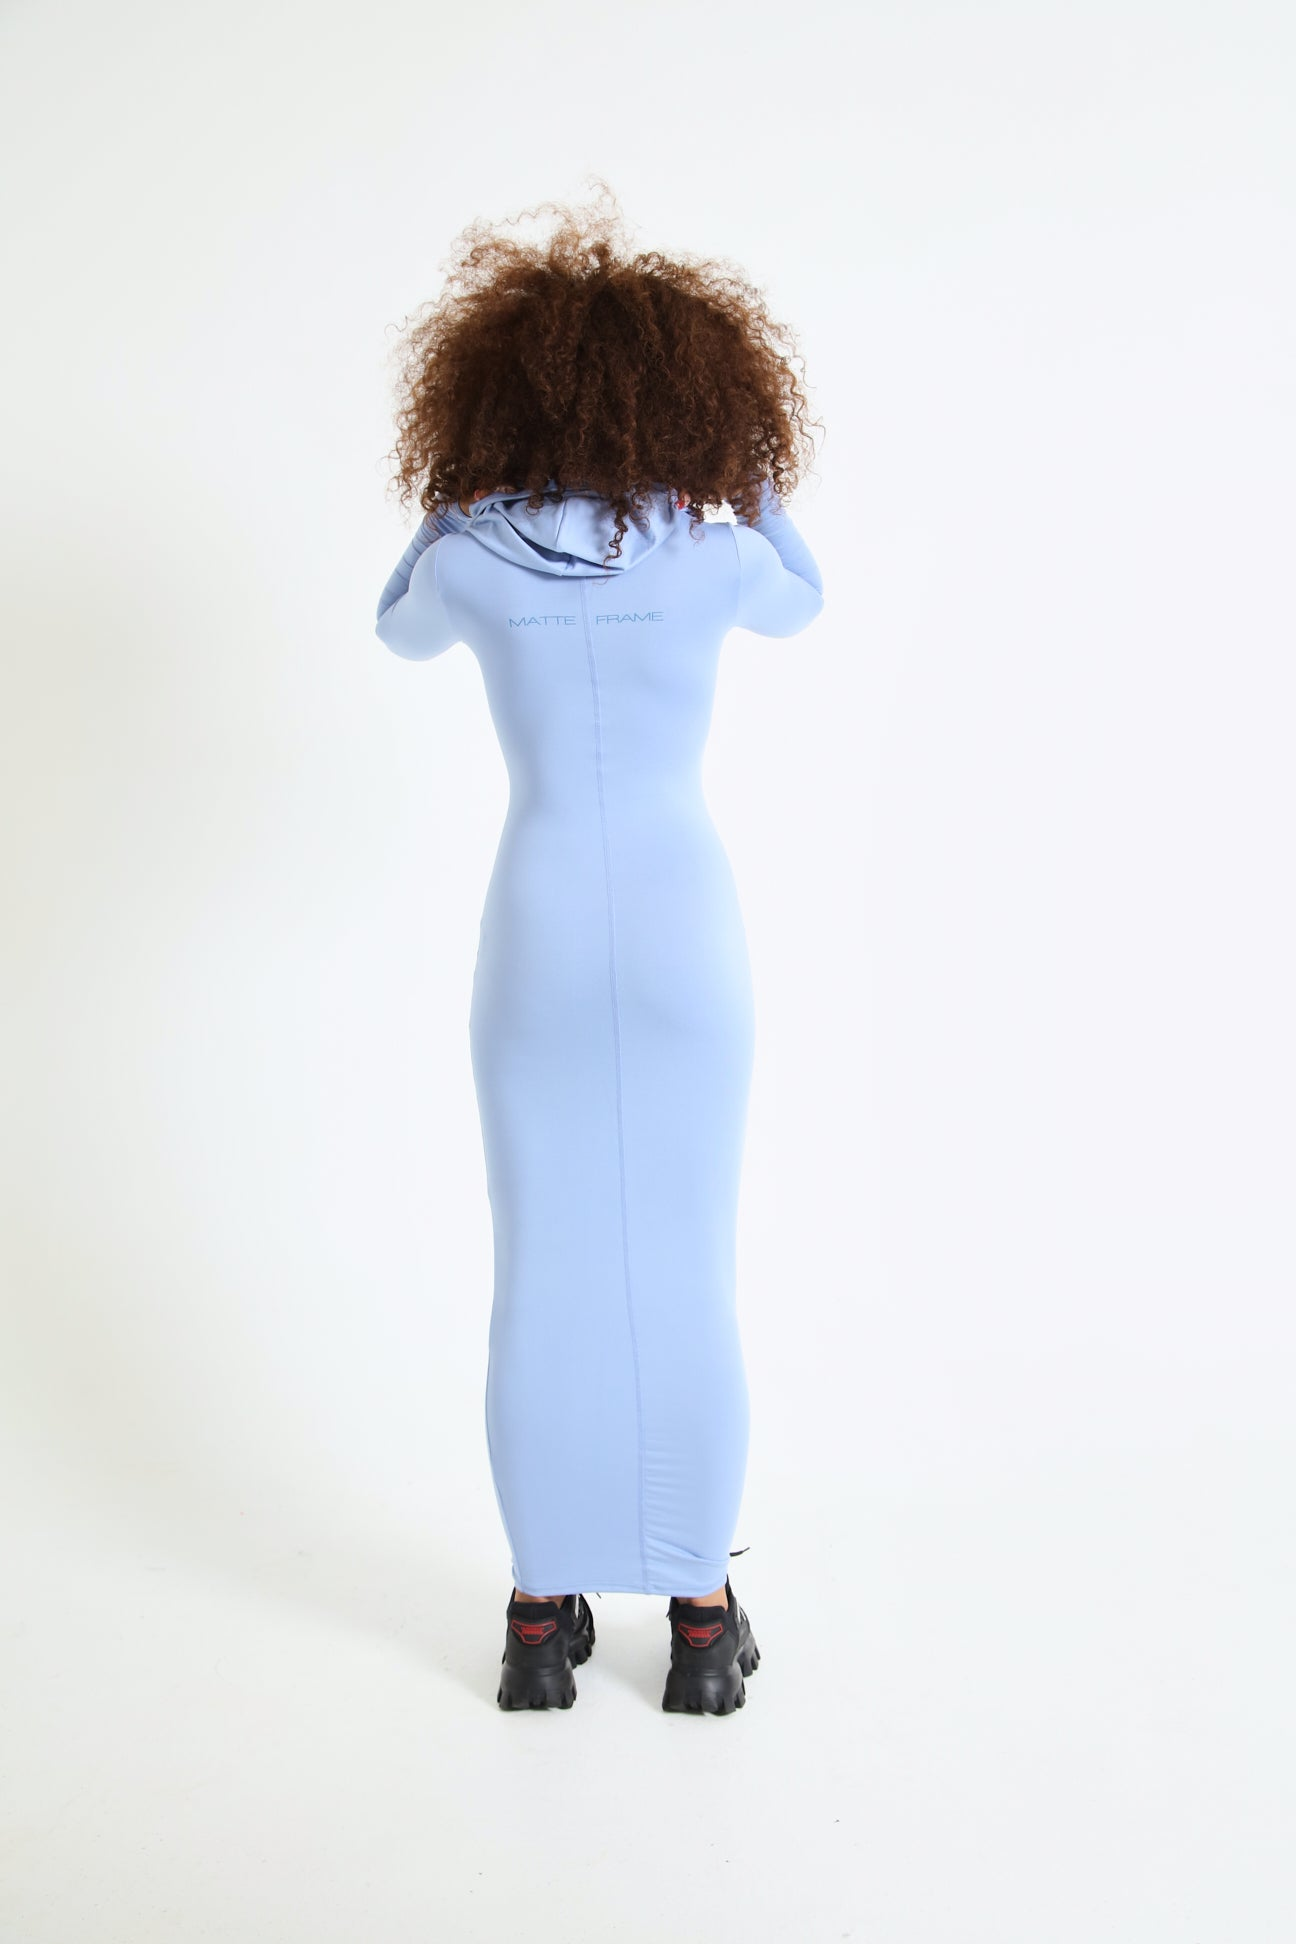 Matte Frame Hooded Dress In Denim Blue